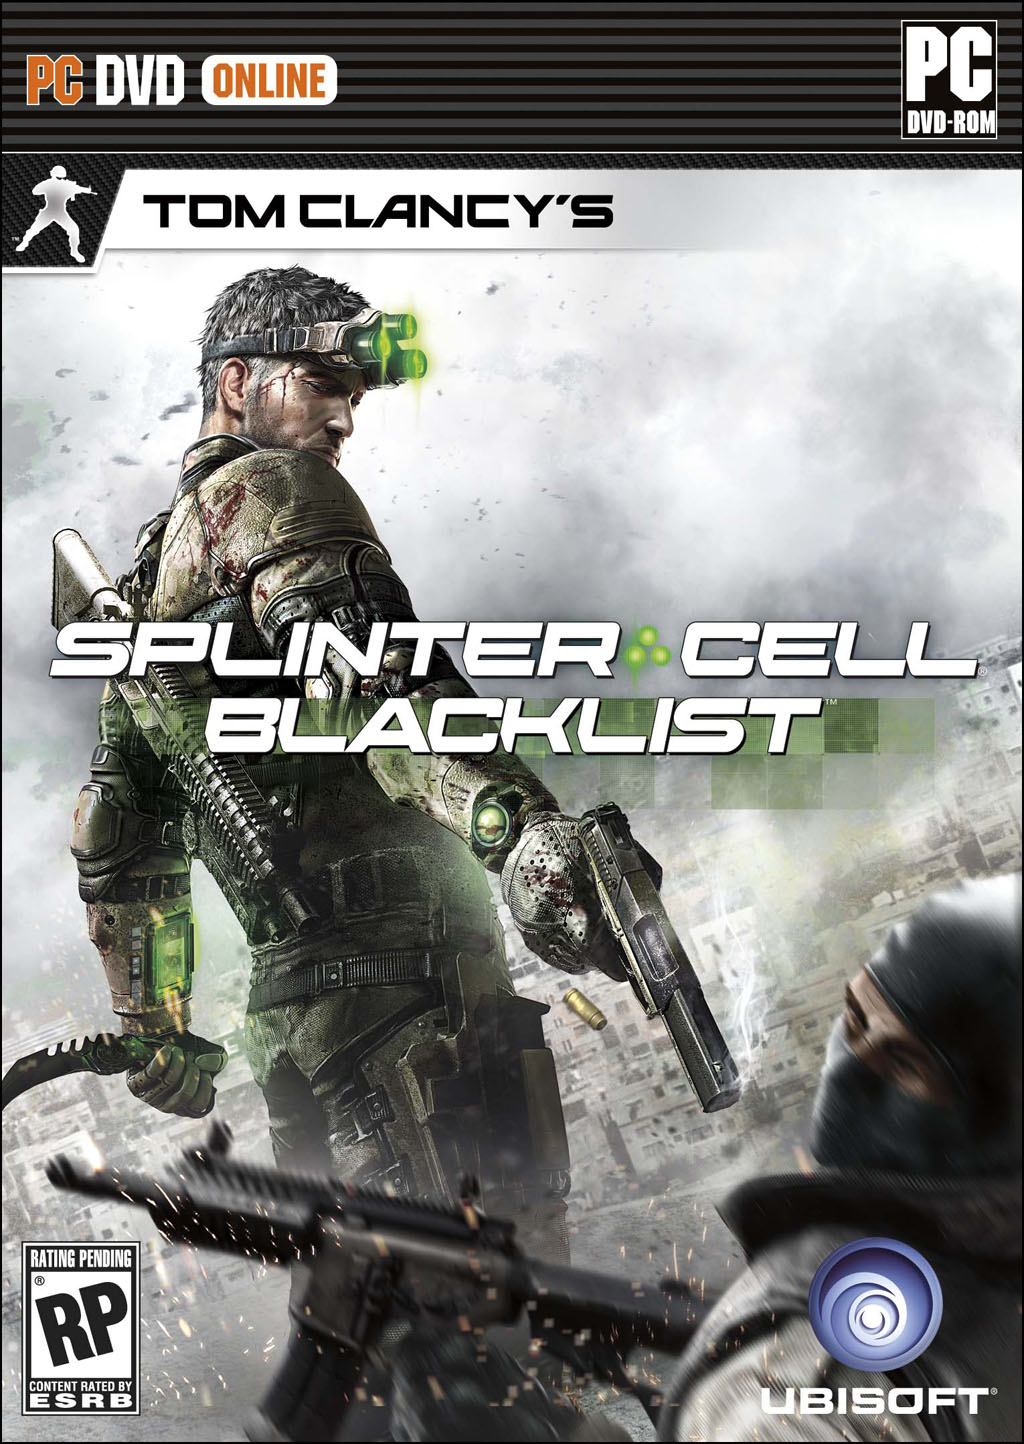 Download Tom Clancy's: Splinter Cell Blacklist Torrent PC